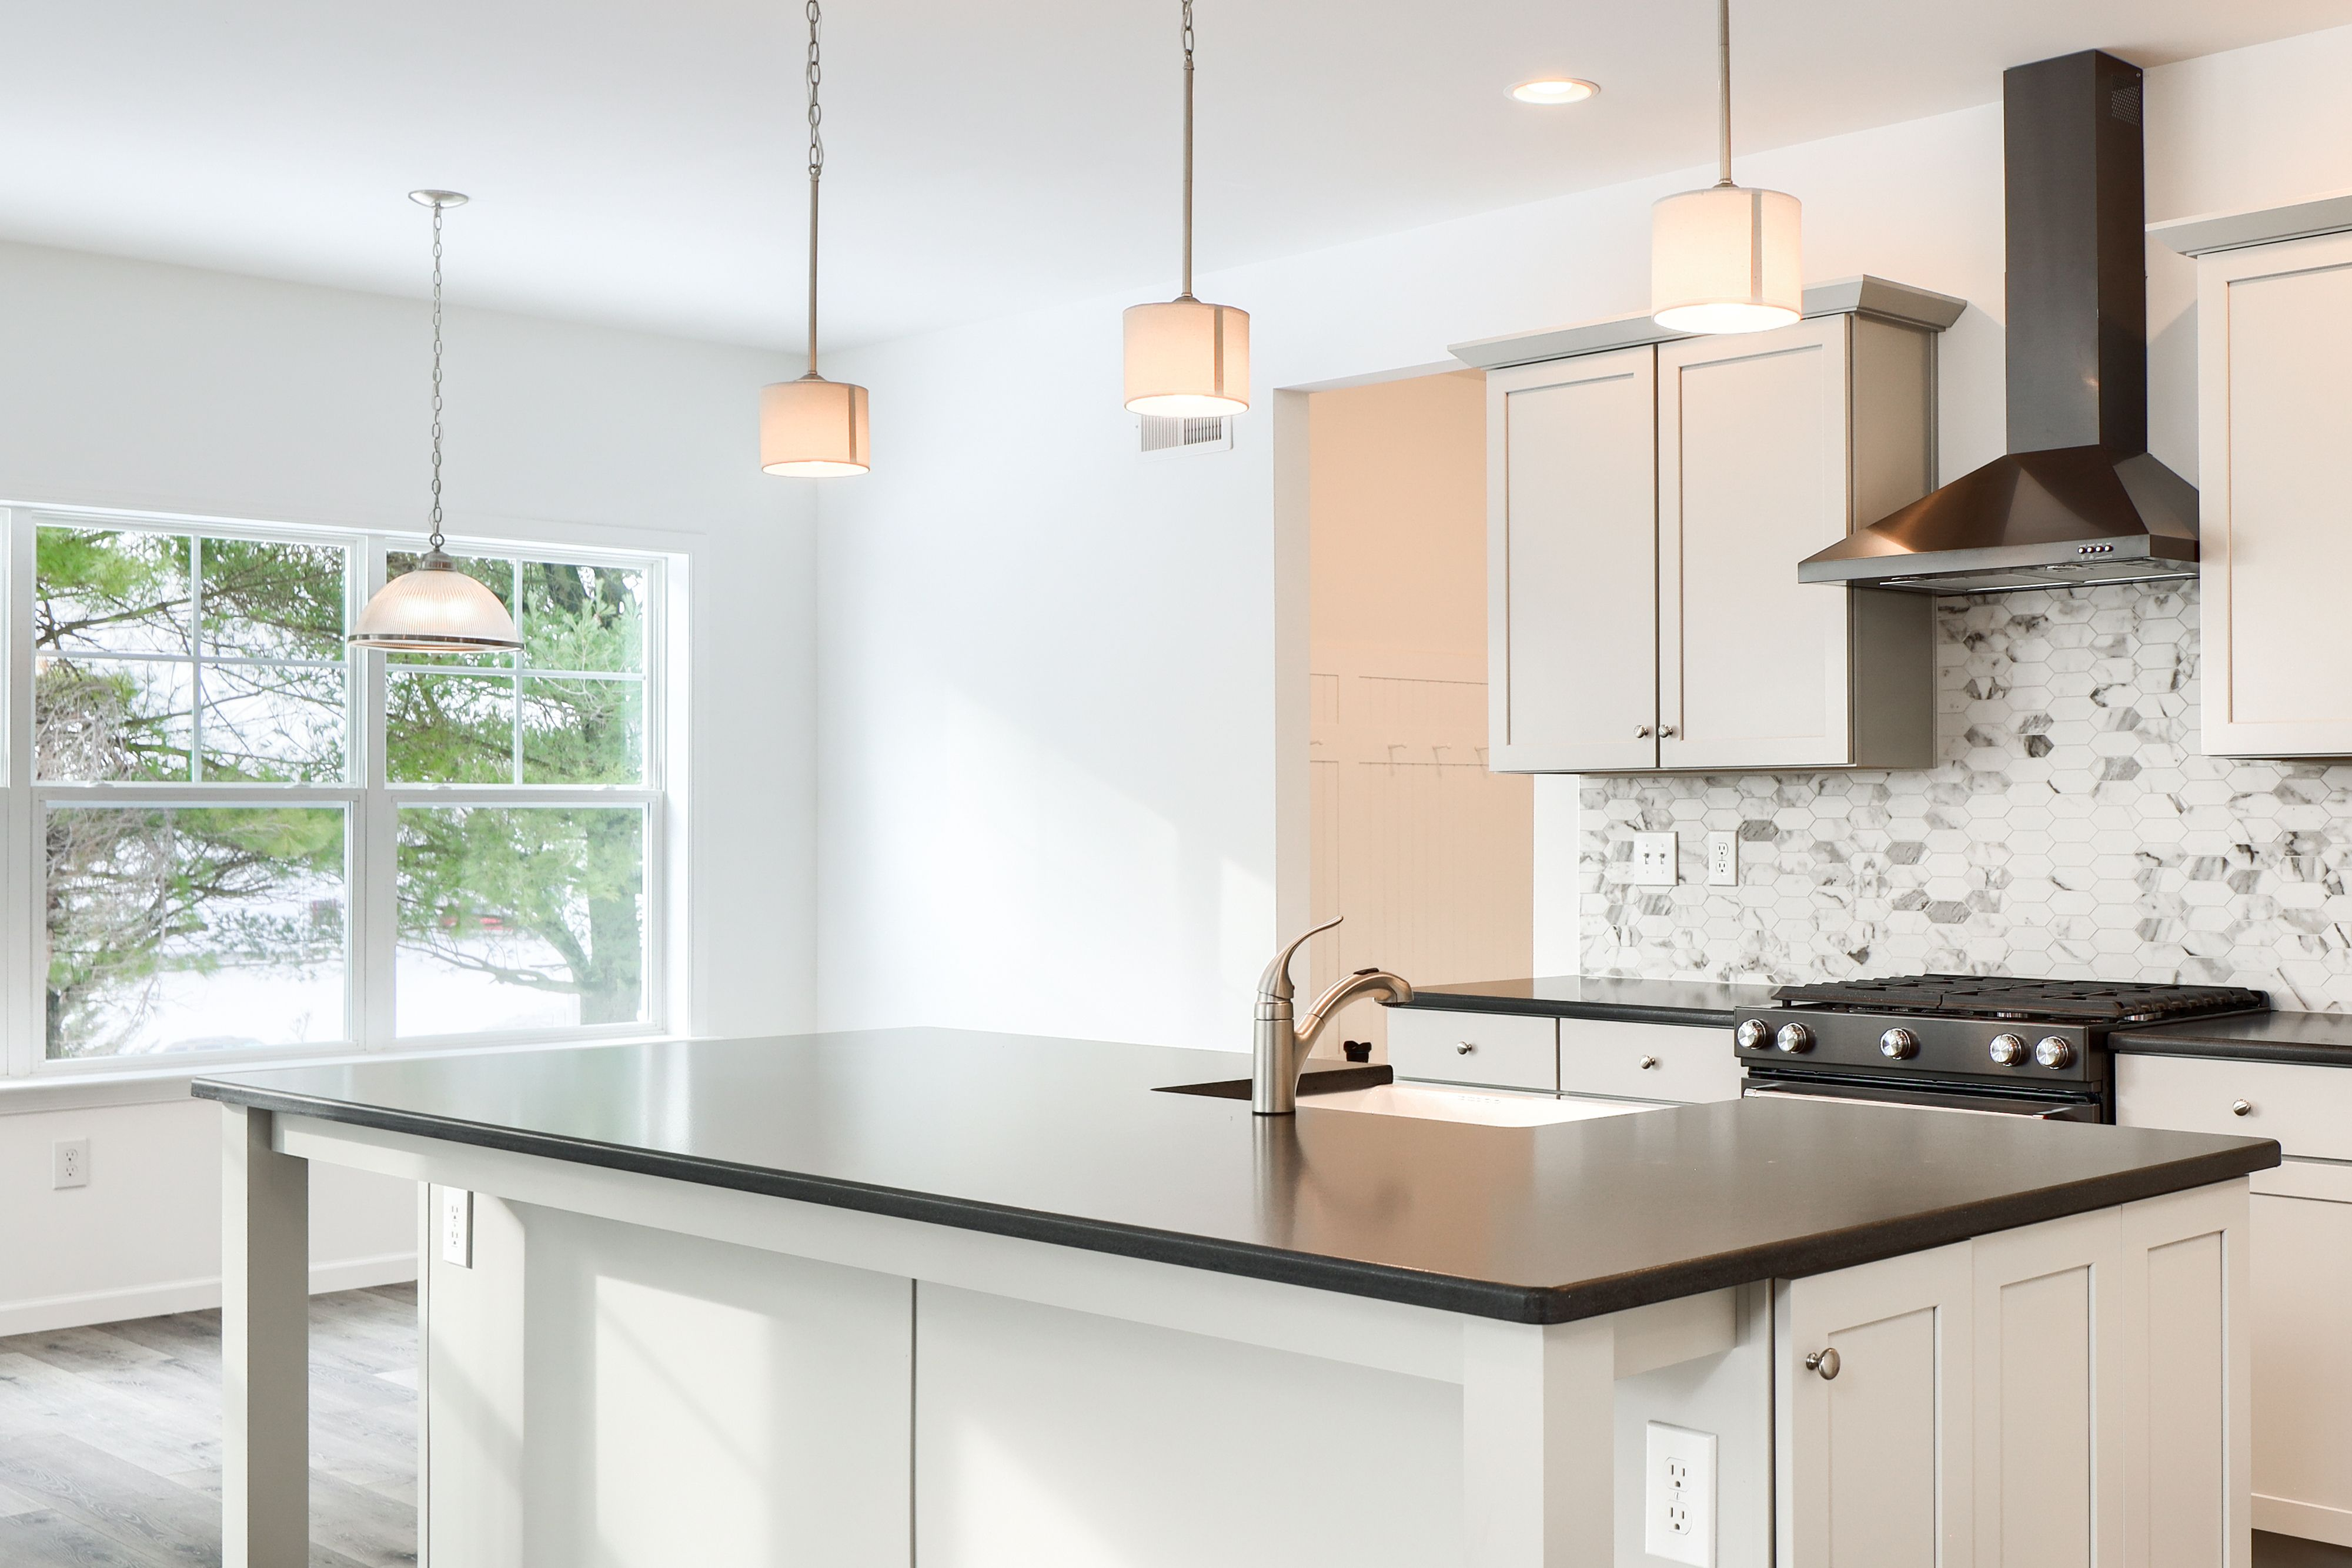 Kitchen featured in the Addison Vintage By Keystone Custom Homes in Washington, MD